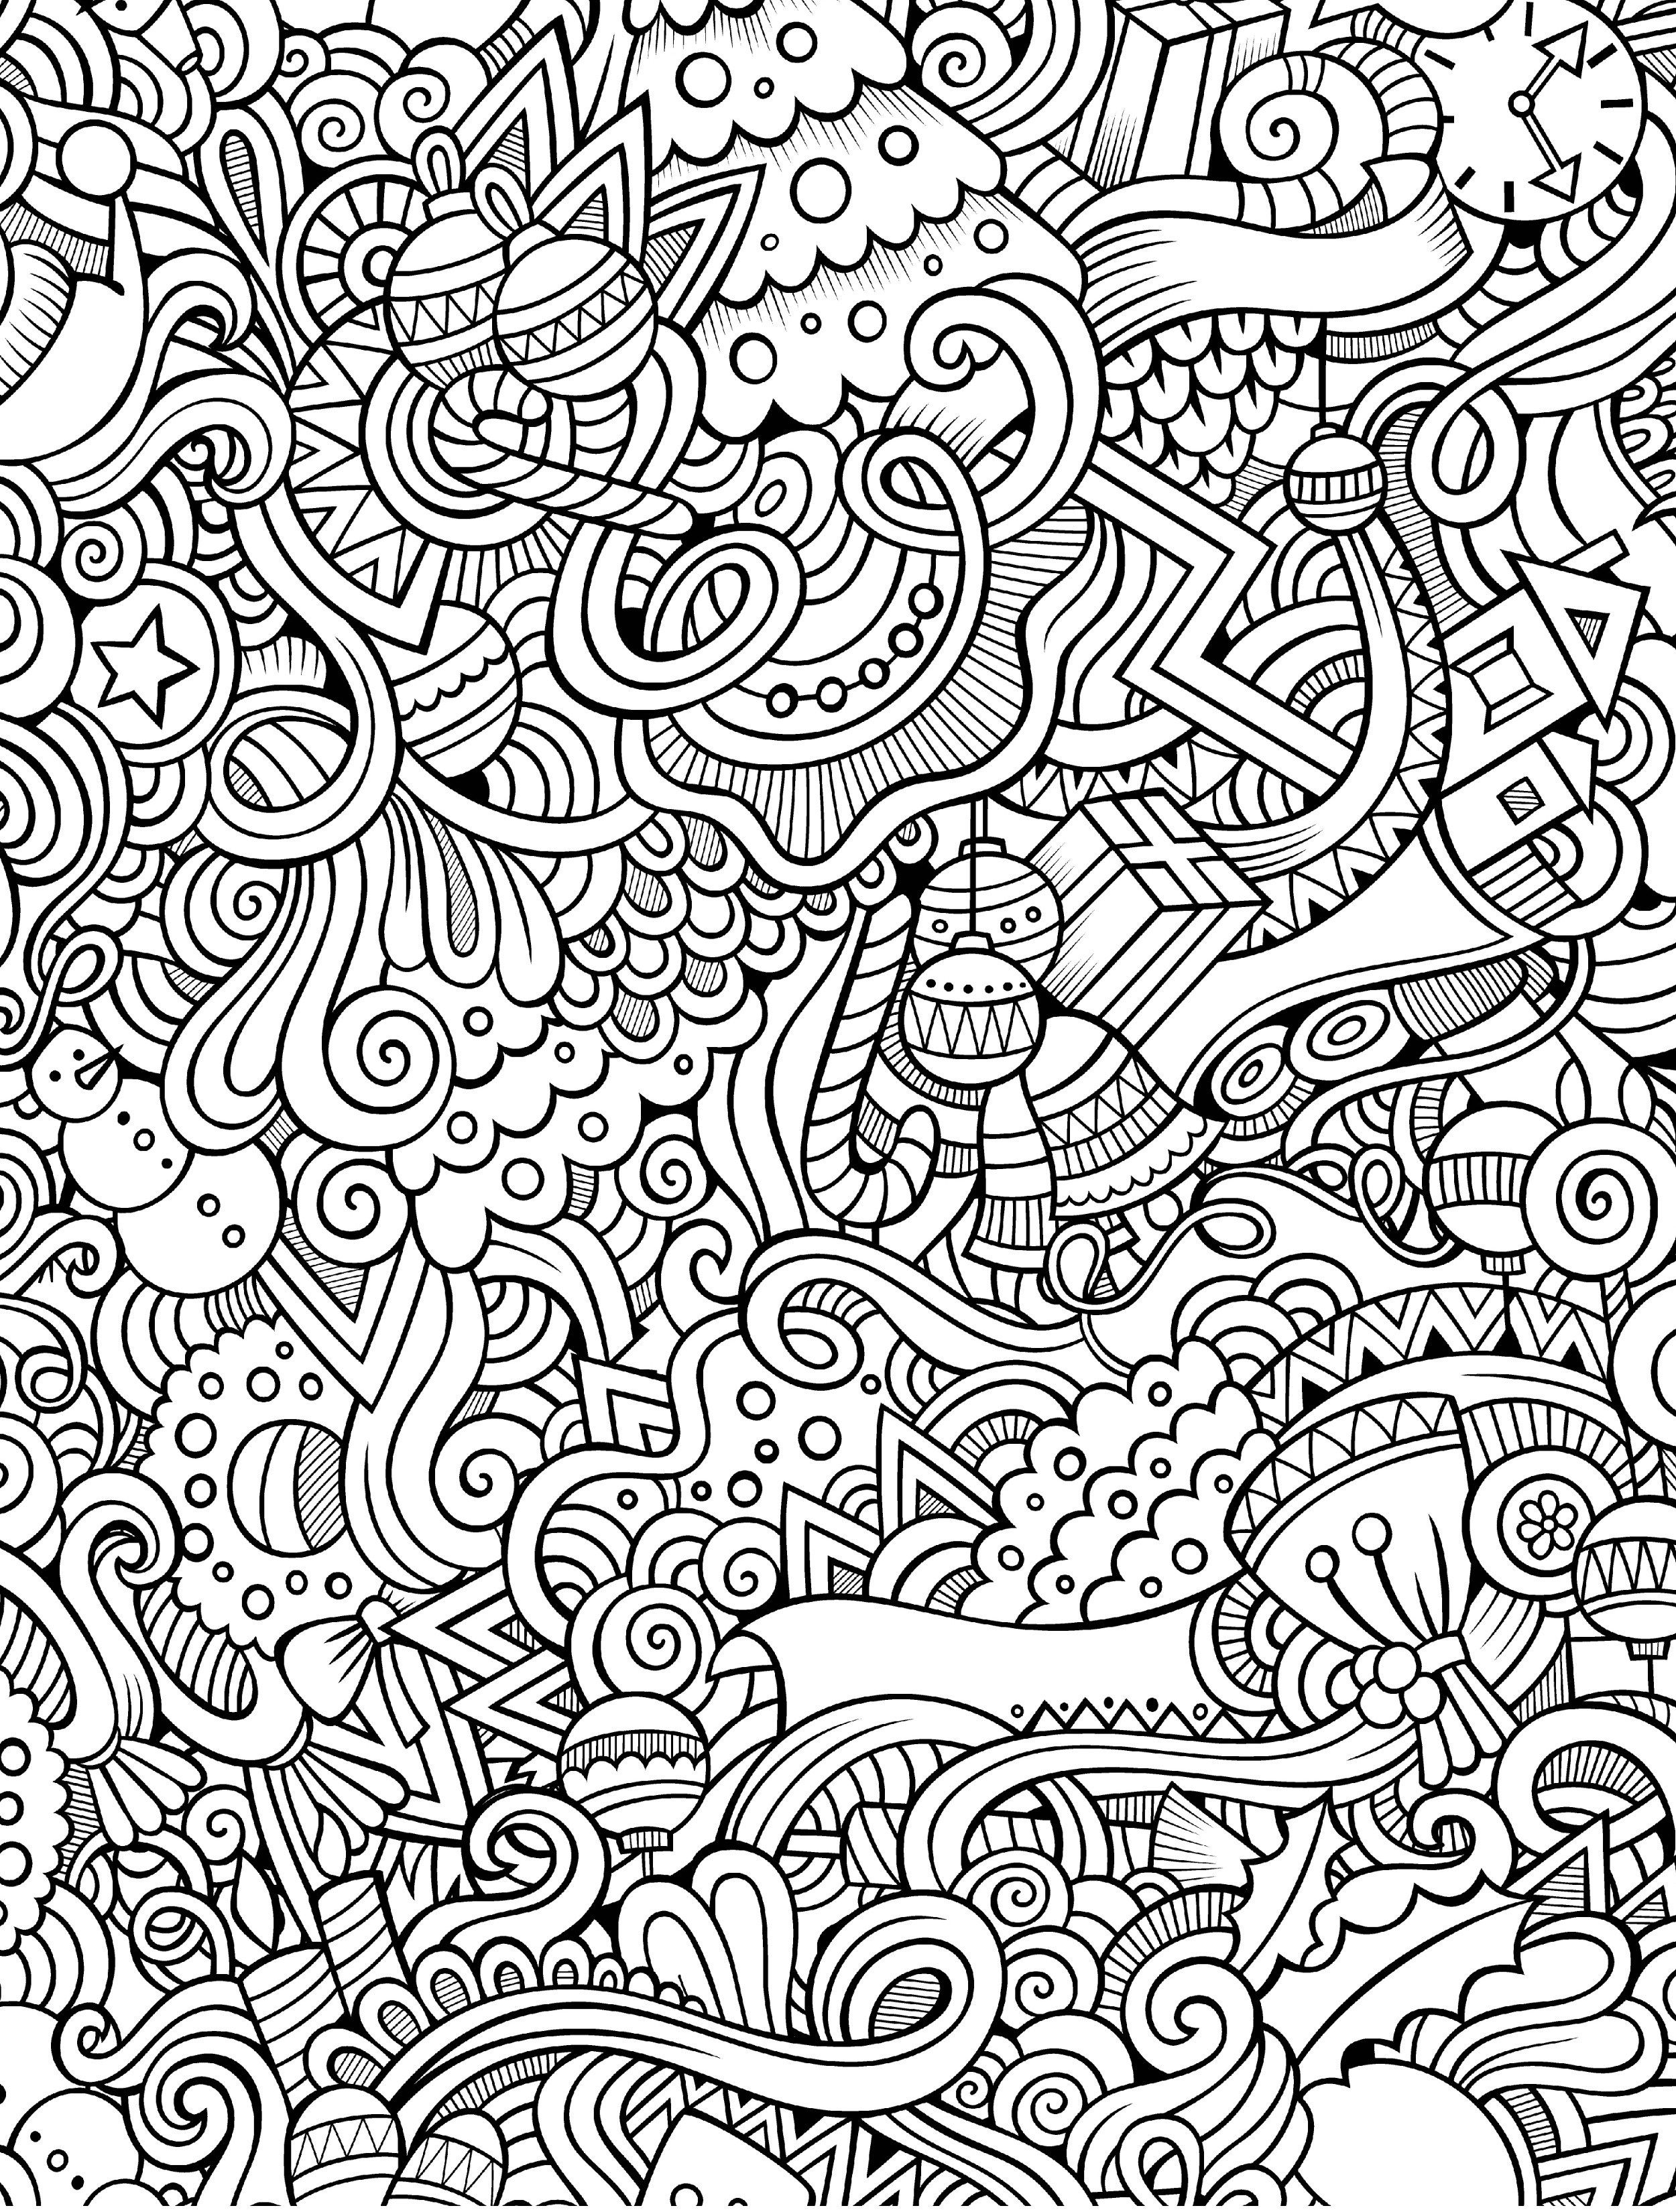 Christmas Coloring Pages For Adults Free Printable With 10 Holiday Adult